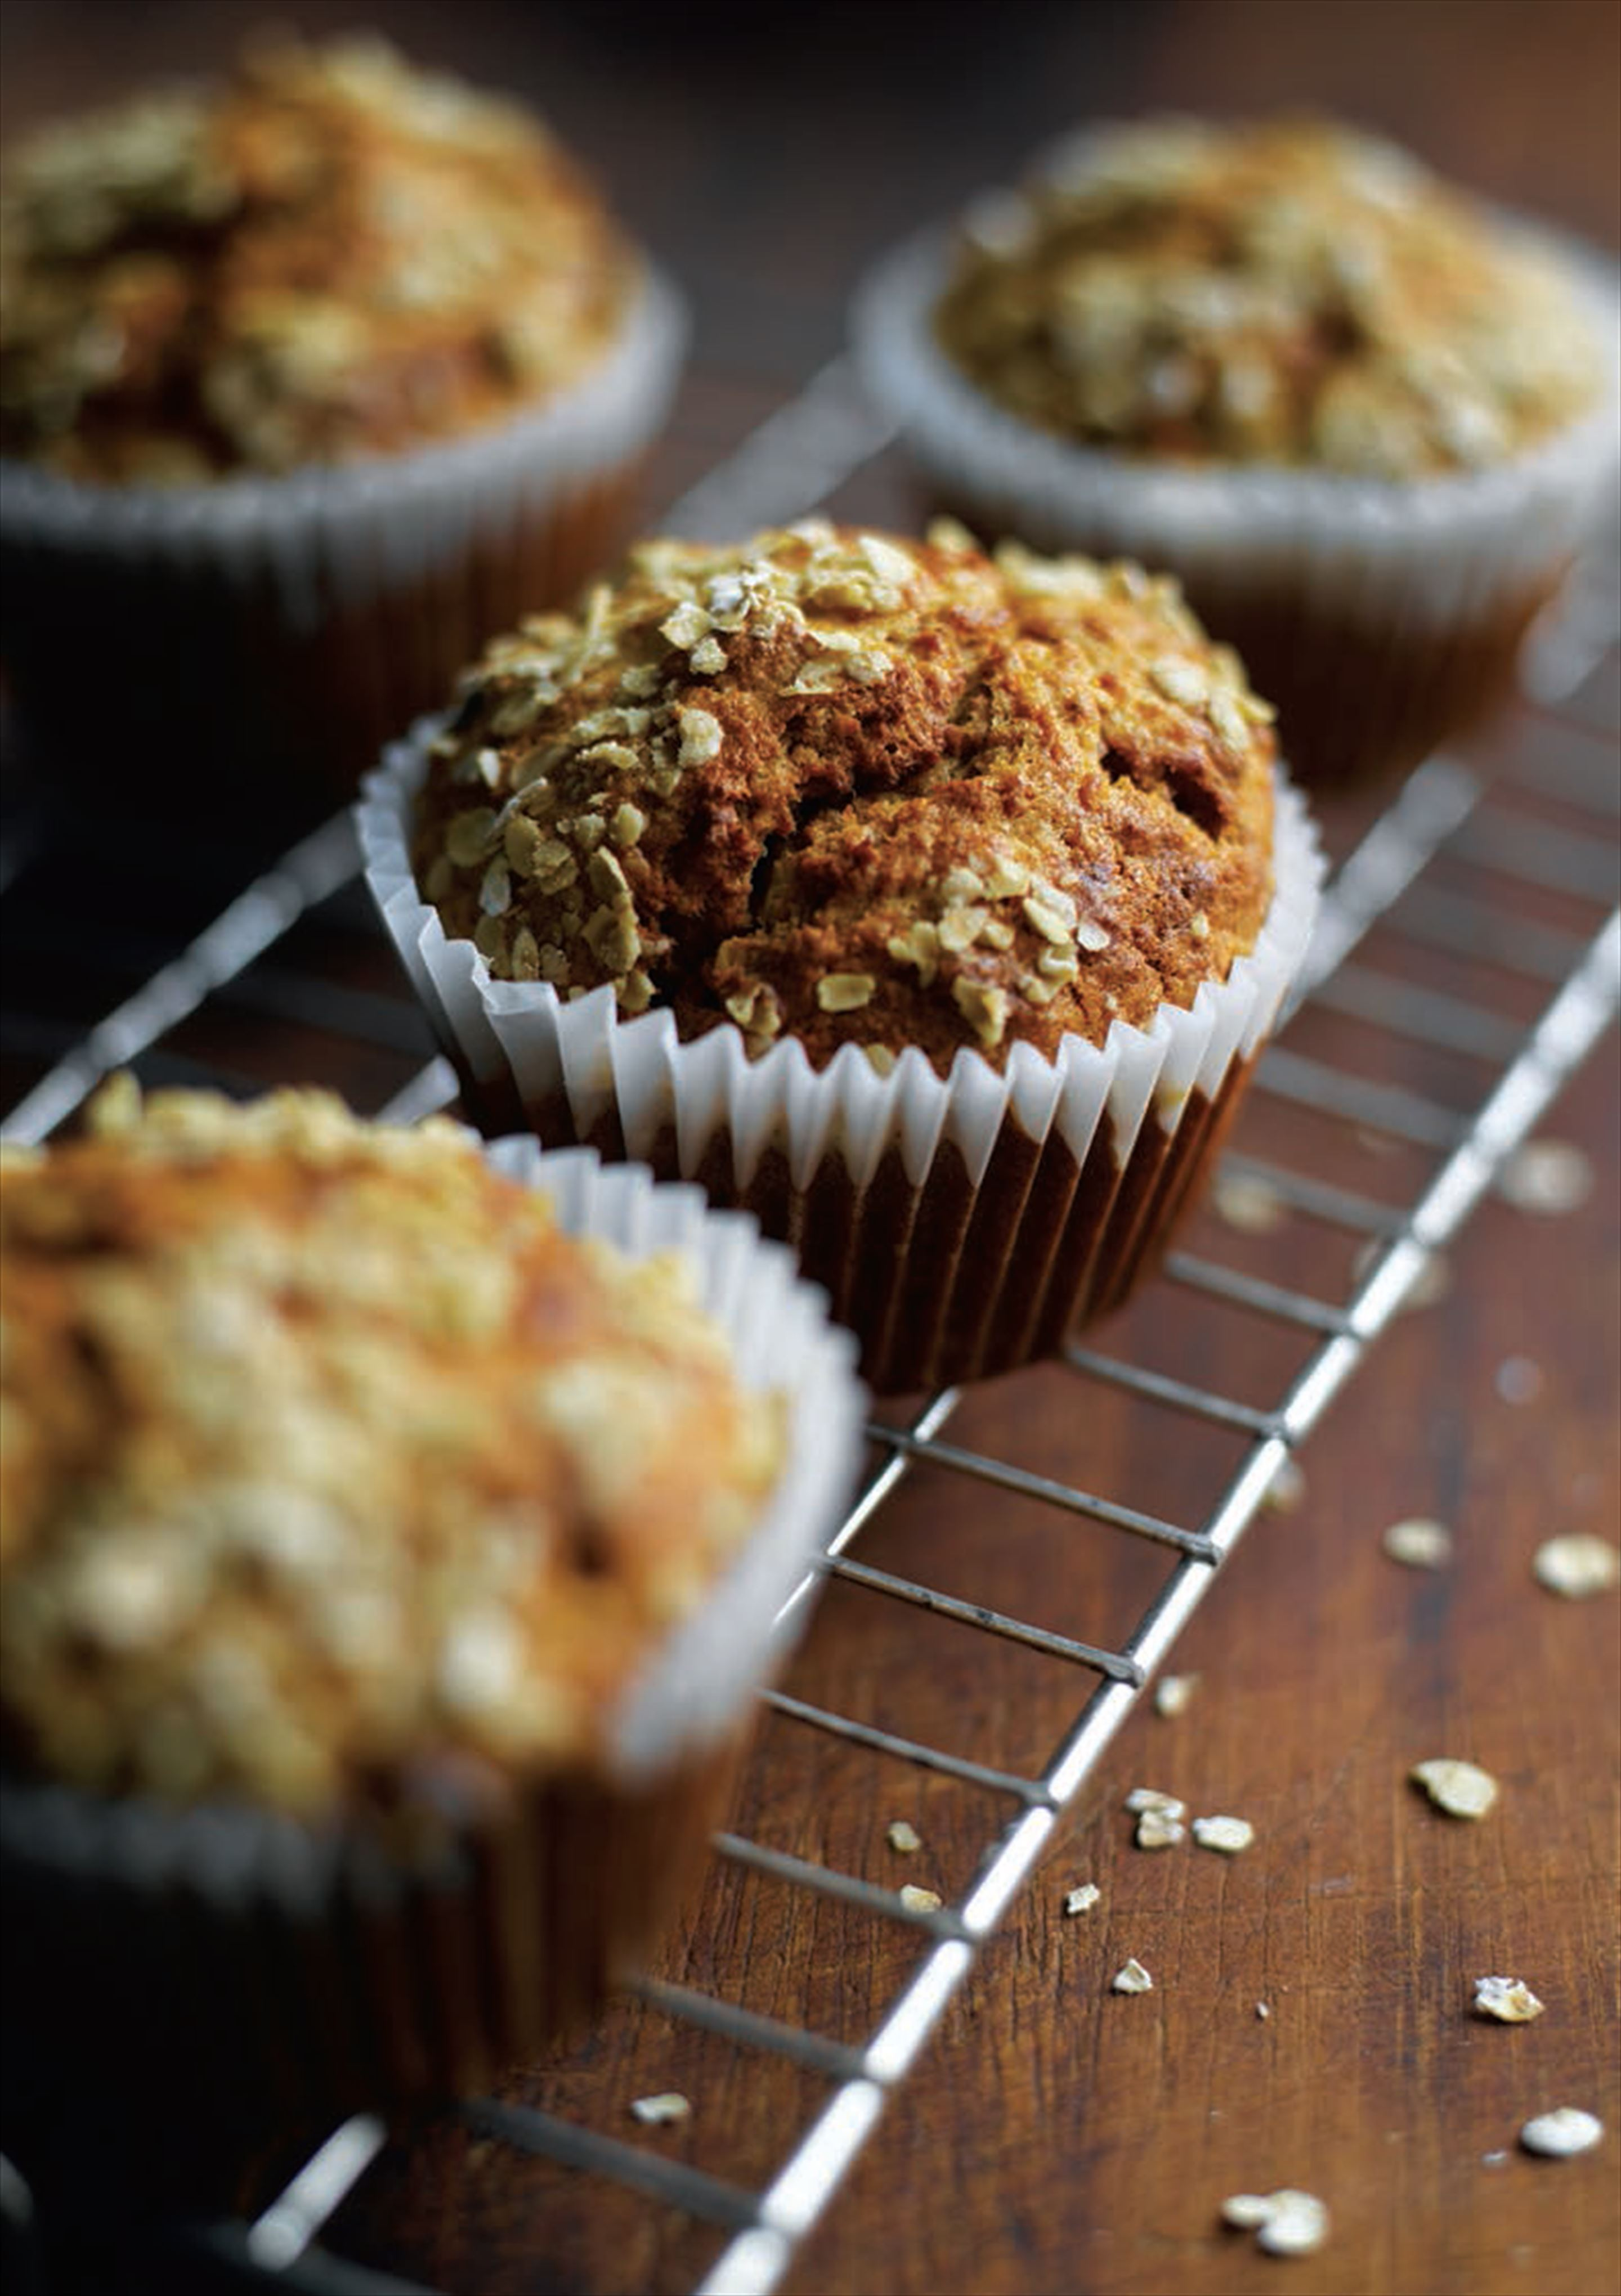 Carrot, oat and cinnamon muffins